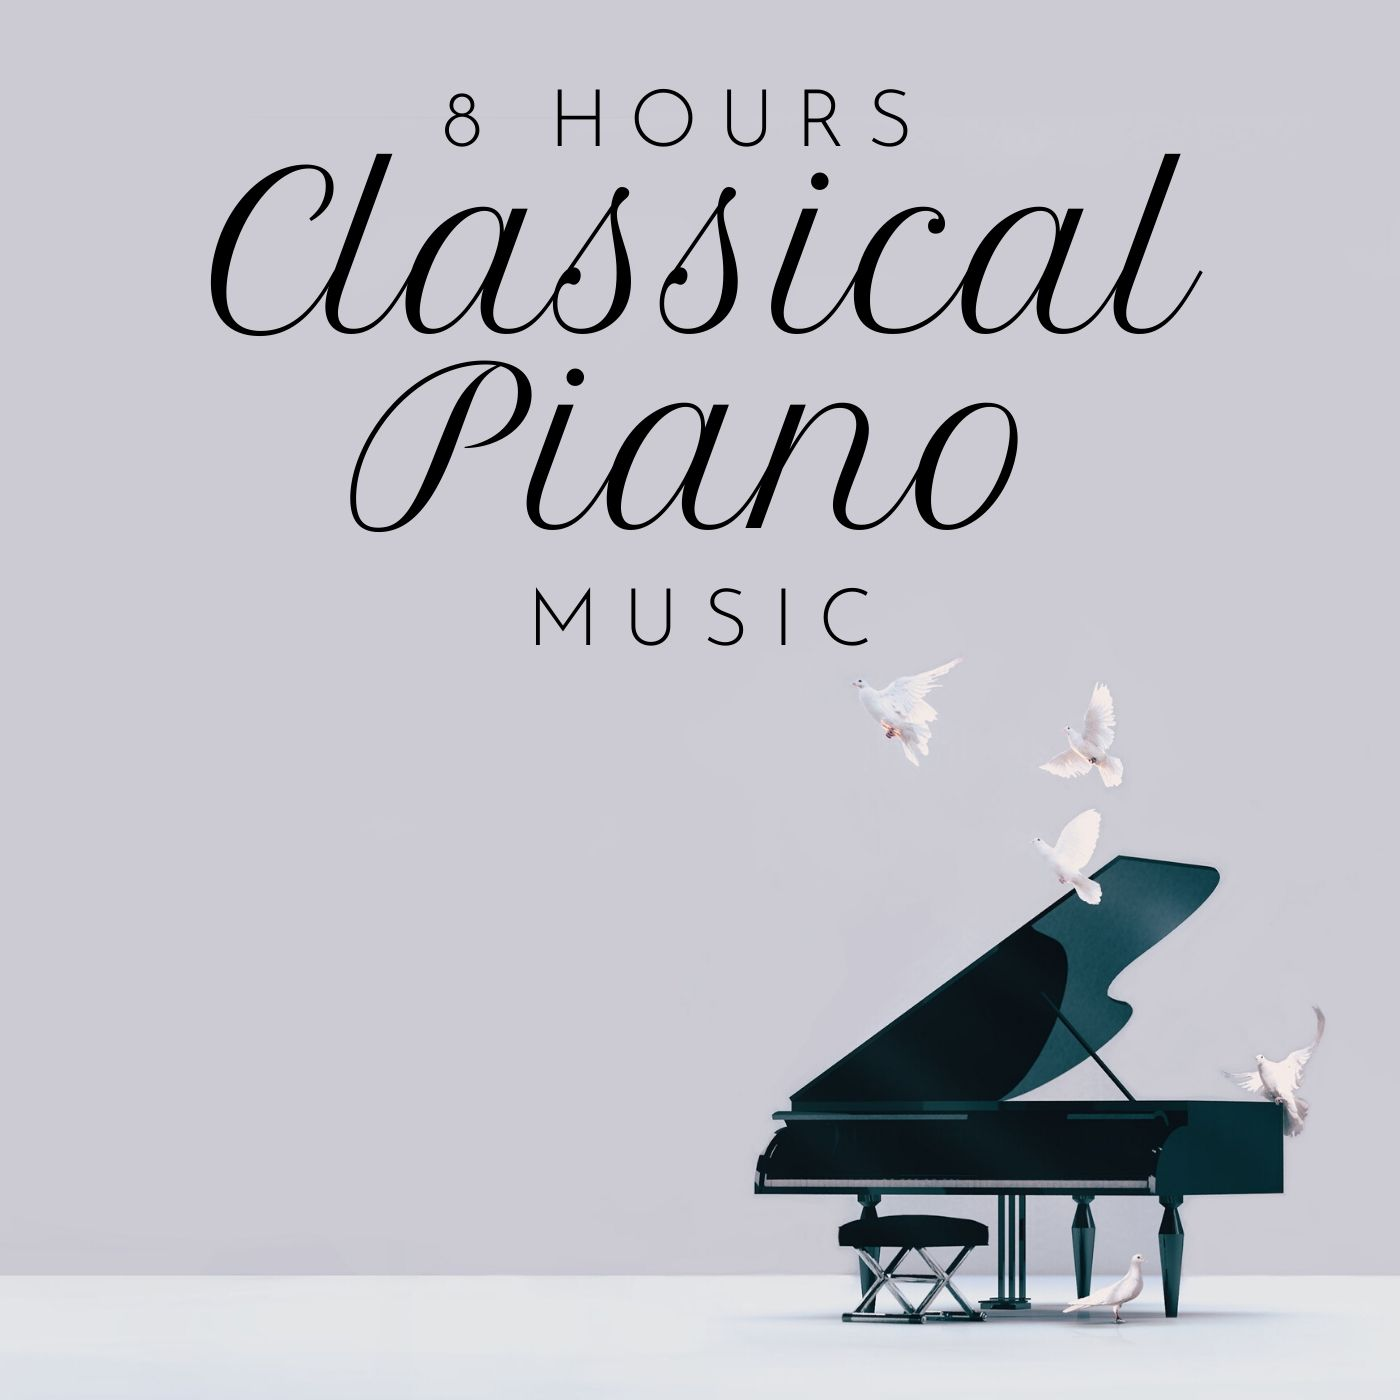 8 Hours Classical Piano Music